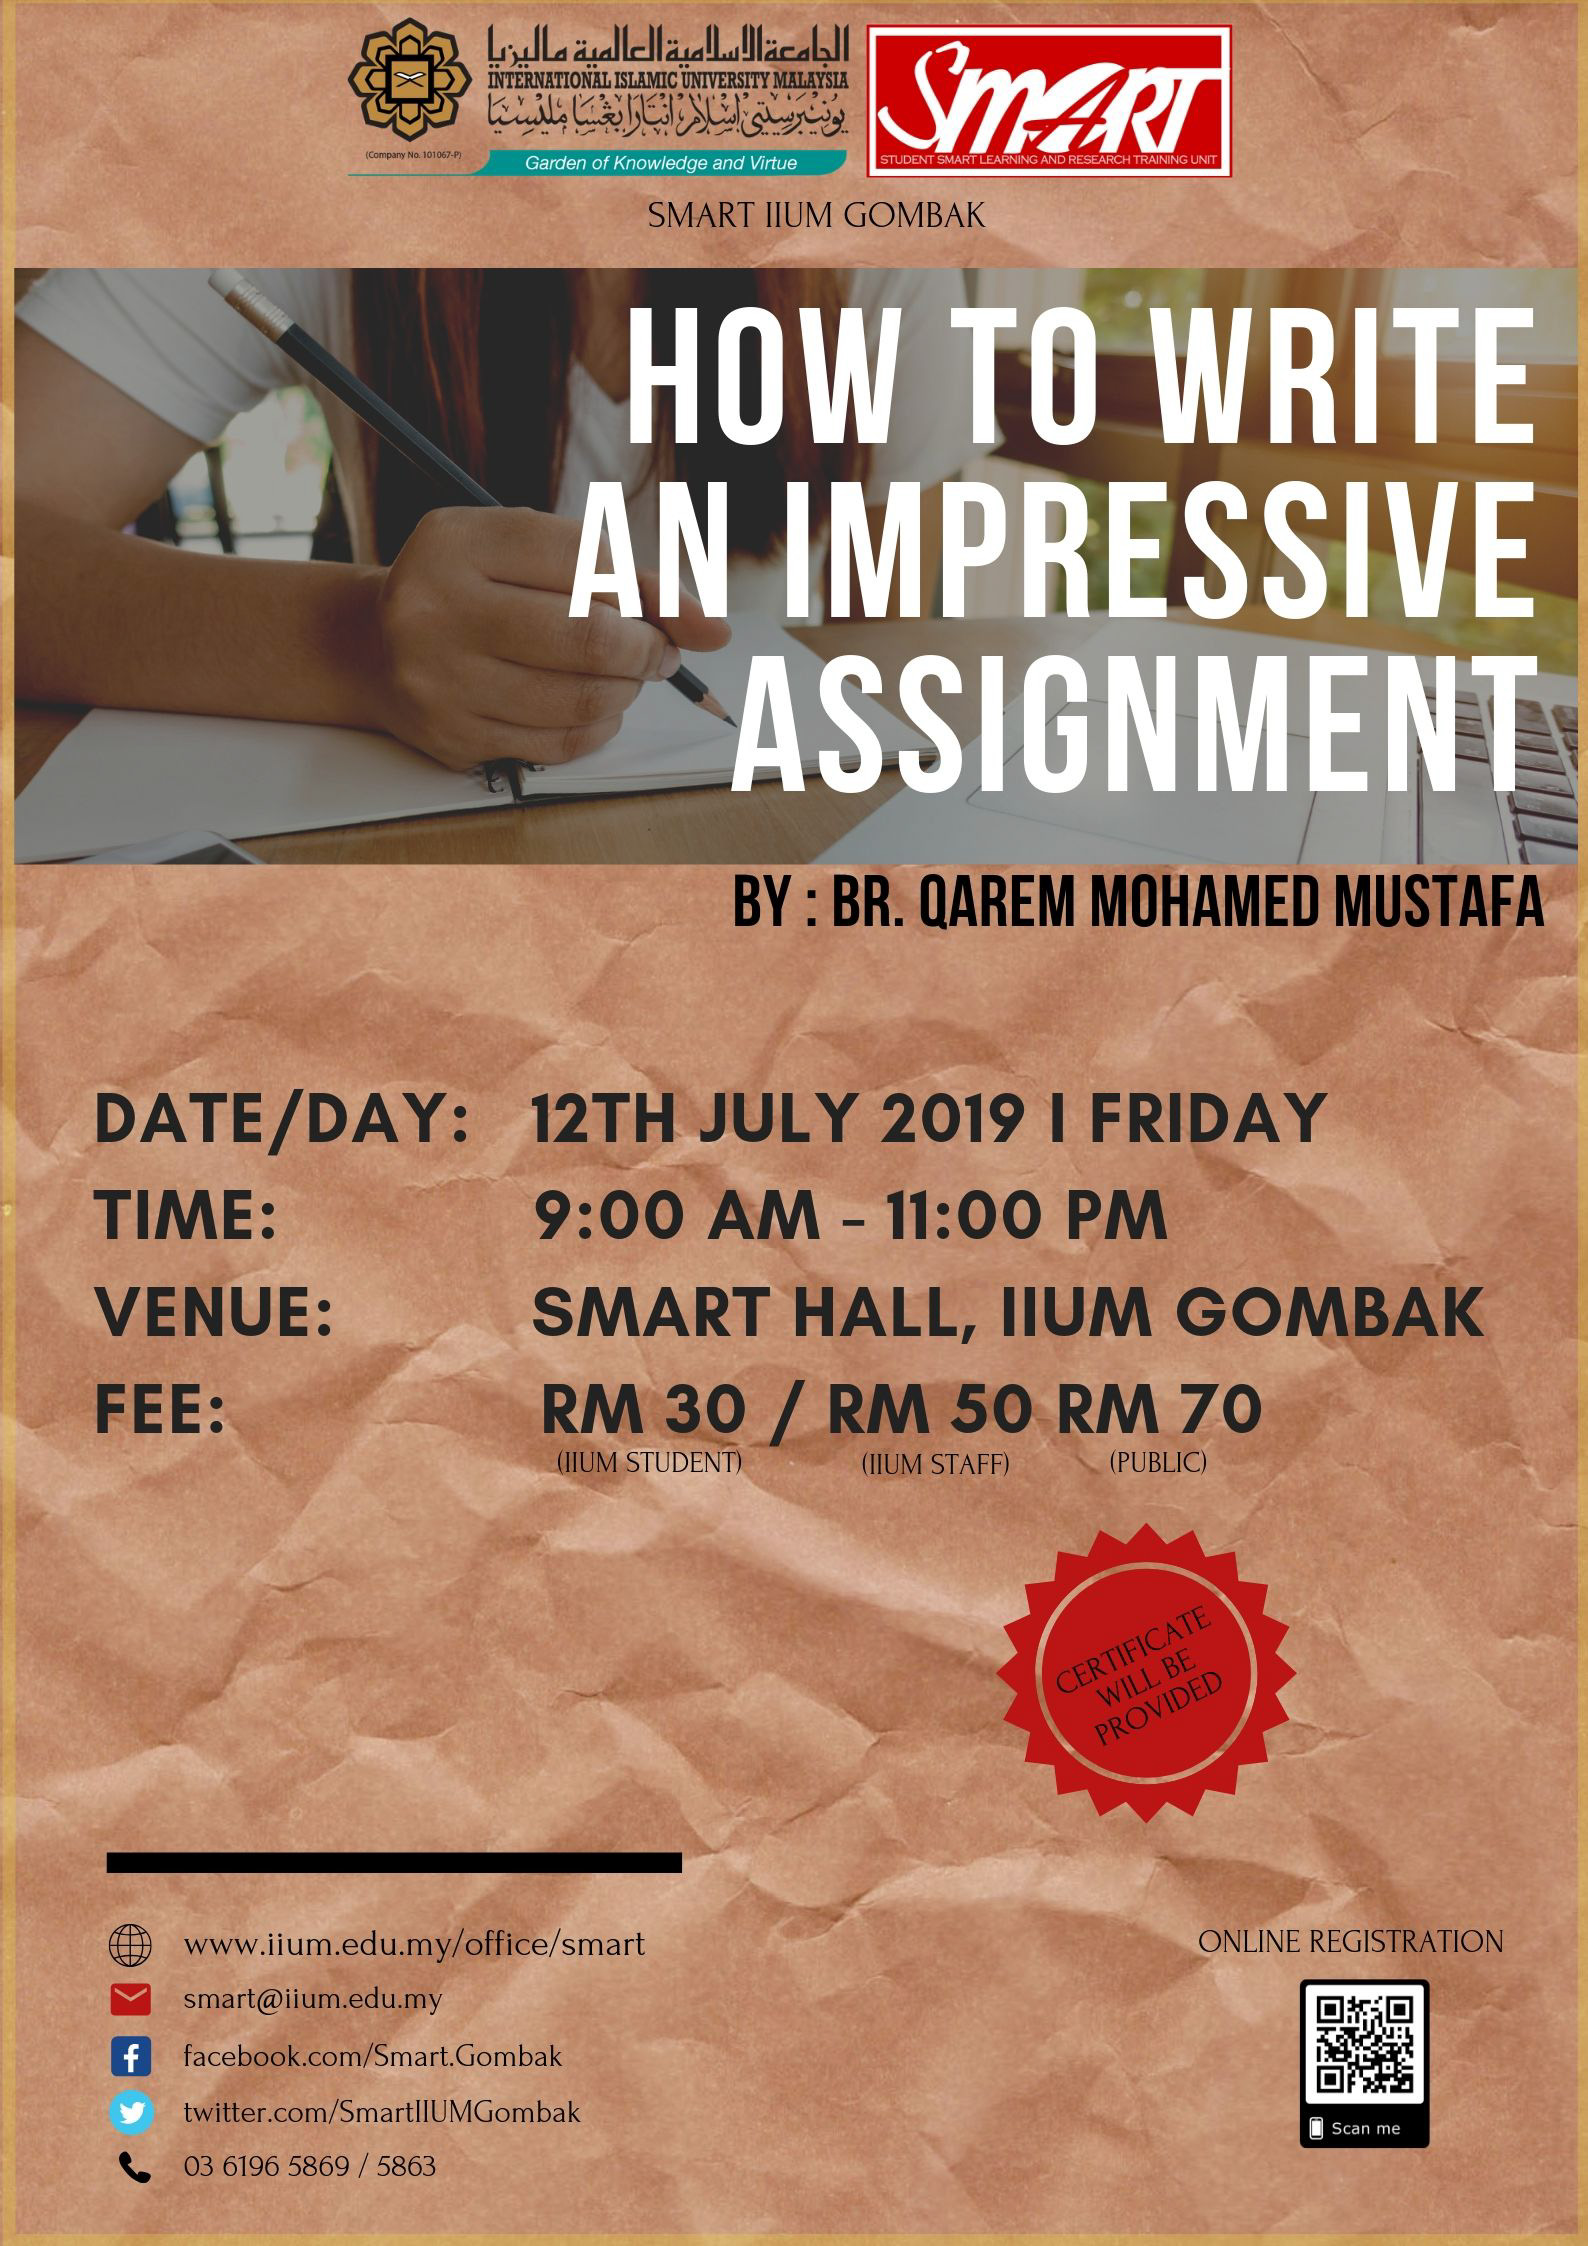 WORKSHOP : HOW TO WRITE AN IMPRESSIVE ASSIGNMENT